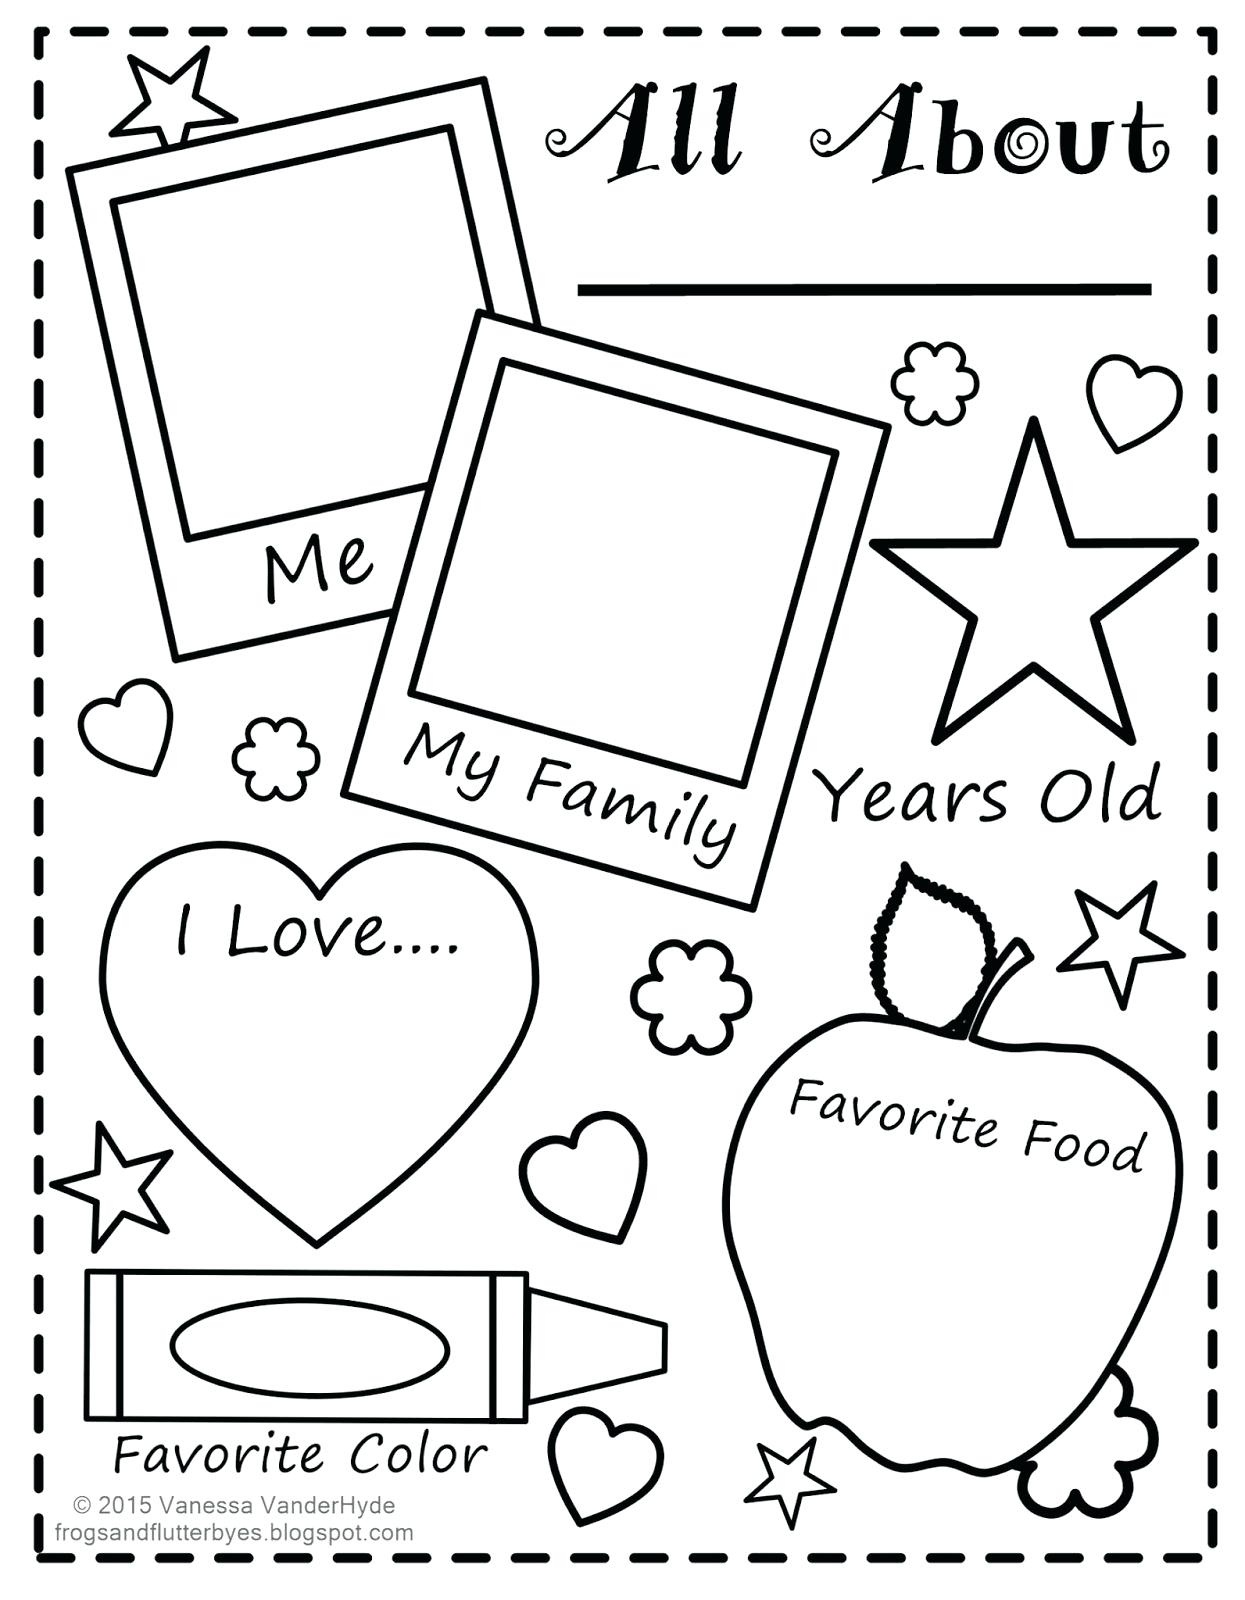 Free Printable All About Me Worksheet Back To School Worksheet All - Free Printable All About Me Worksheet